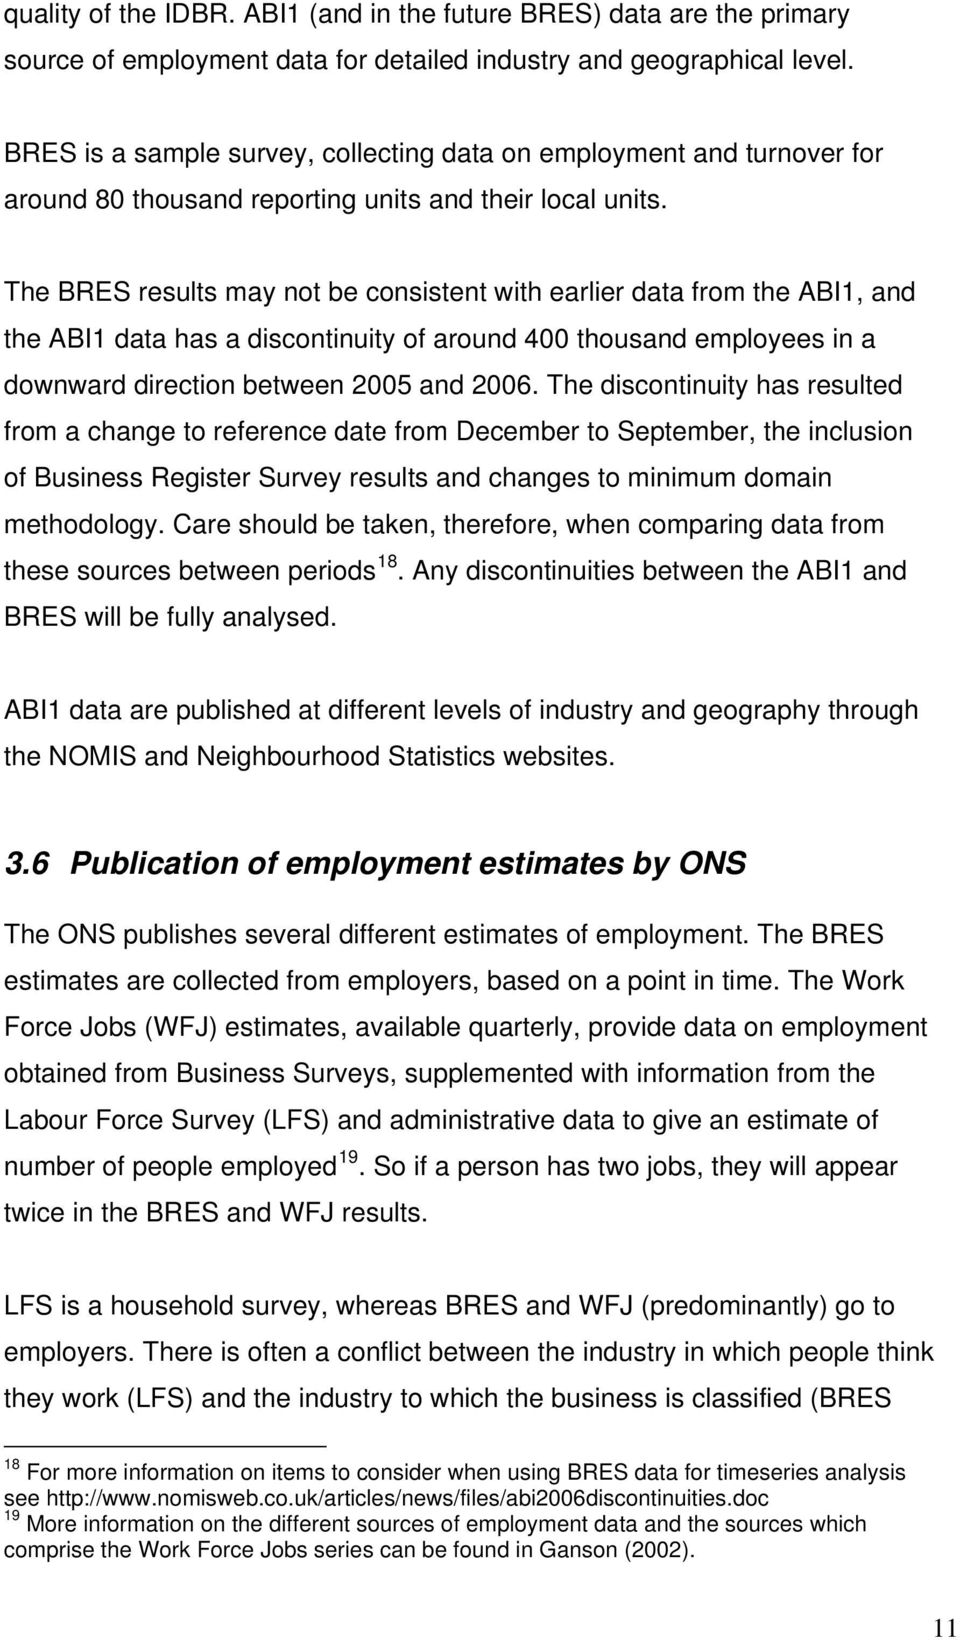 The BRES results may not be consistent with earlier data from the ABI1, and the ABI1 data has a discontinuity of around 400 thousand employees in a downward direction between 2005 and 2006.